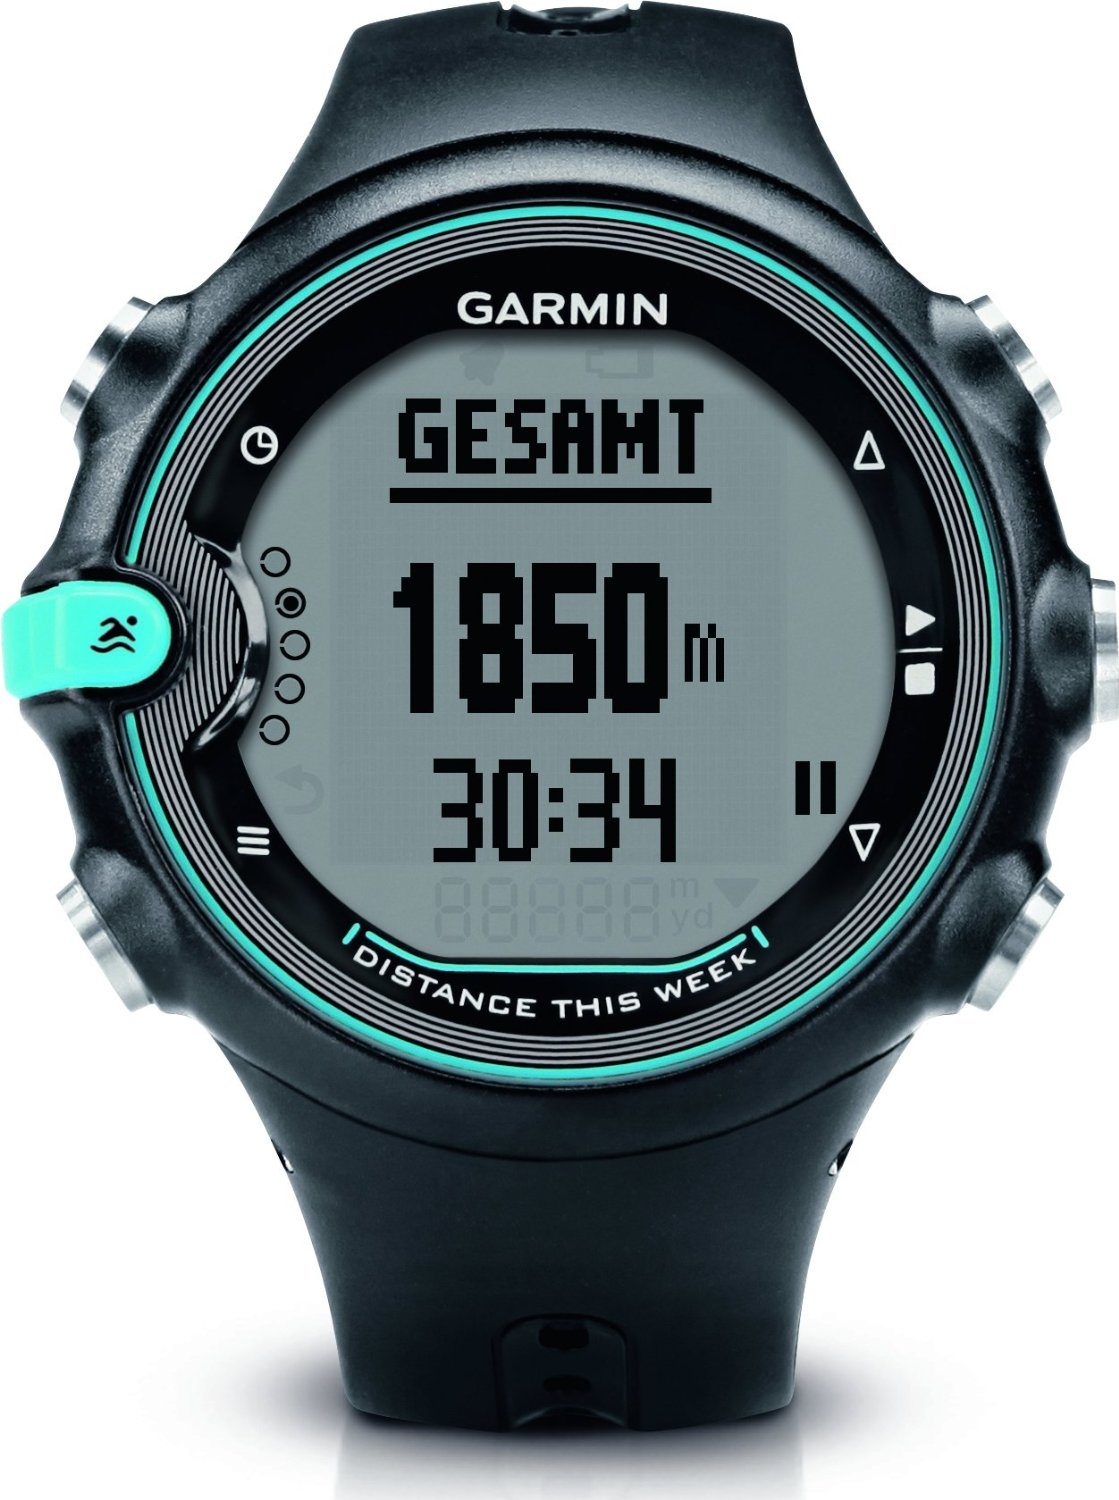 Garmin Swim Watch Review